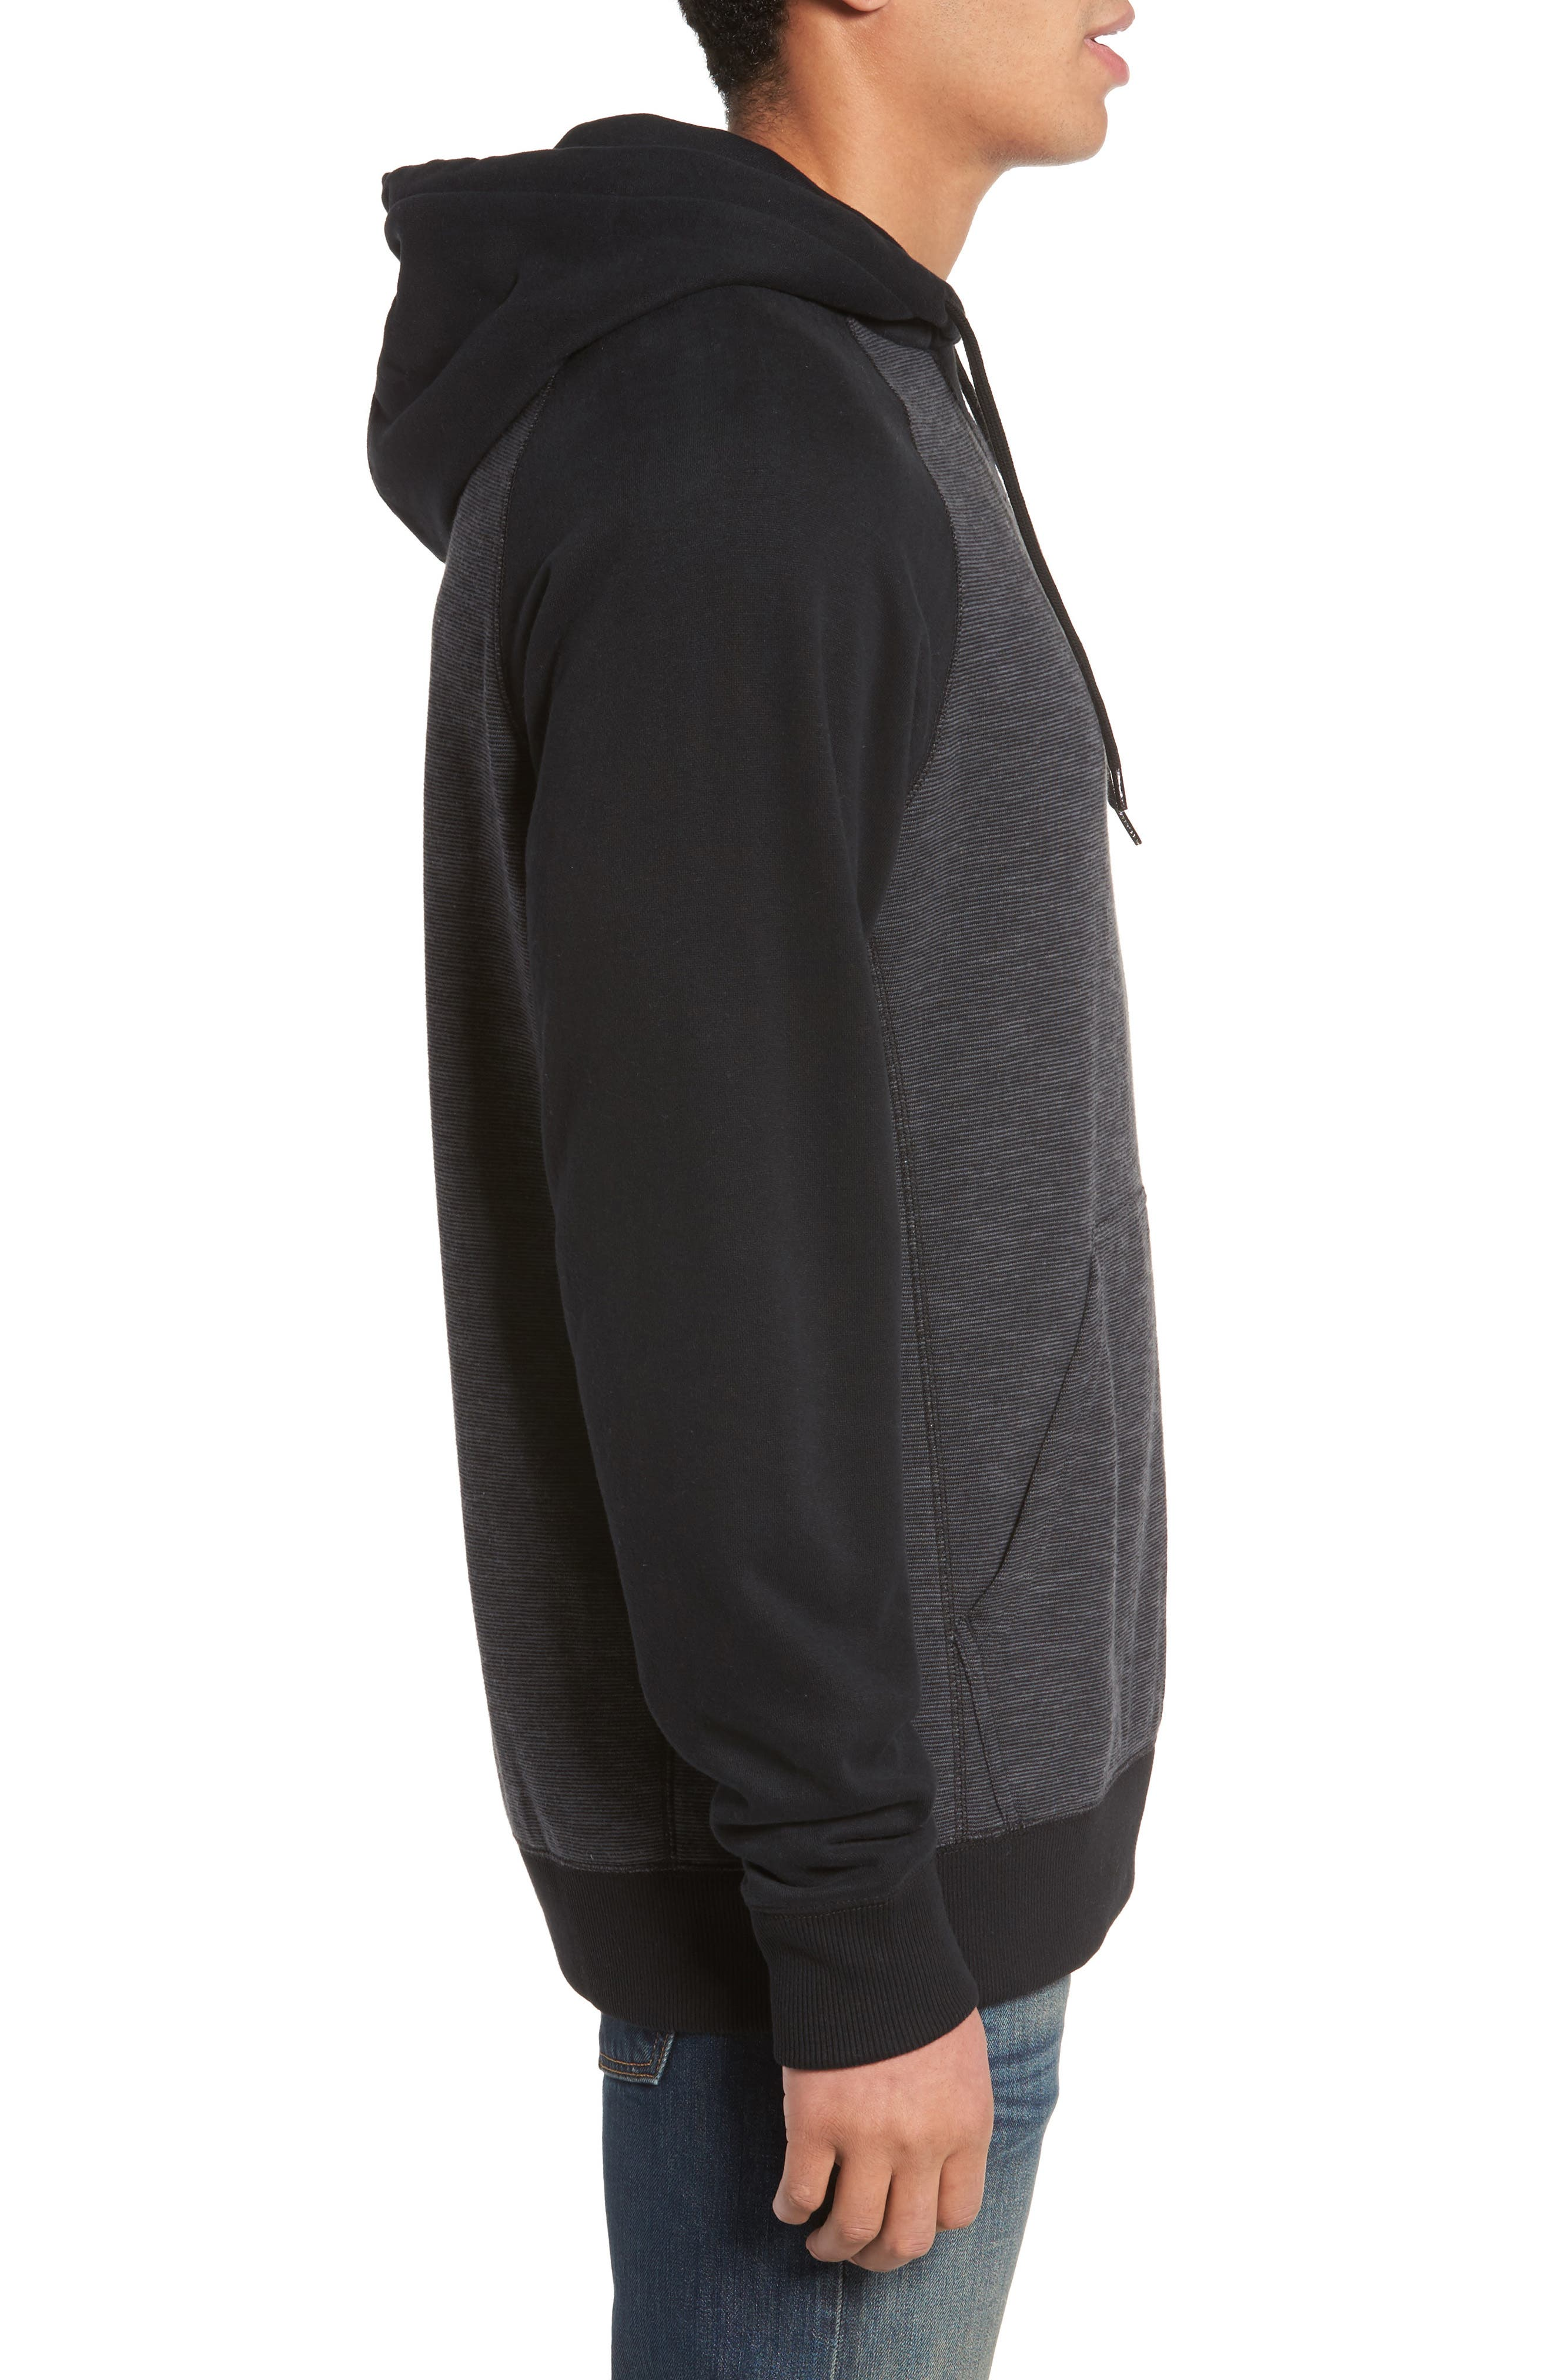 Balance Hoodie,                             Alternate thumbnail 5, color,